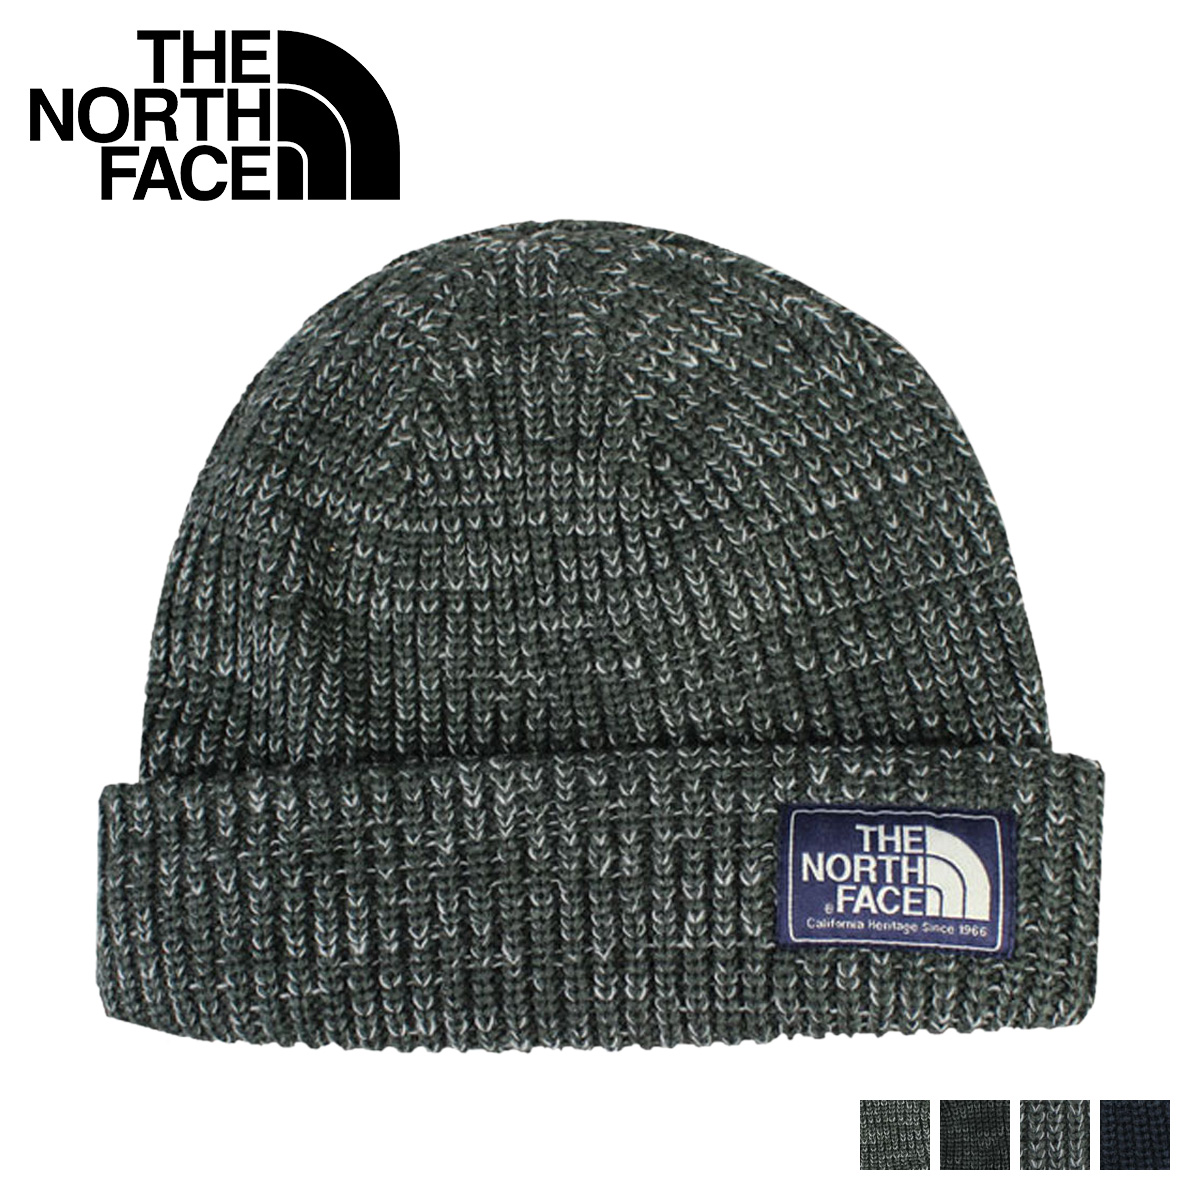 4f324fb47b9 Whats up Sports  THE NORTH FACE north face knit hat Beanie knit Cap SALTY  DOG BEANIE A6W3 men women  9 21 back in stock